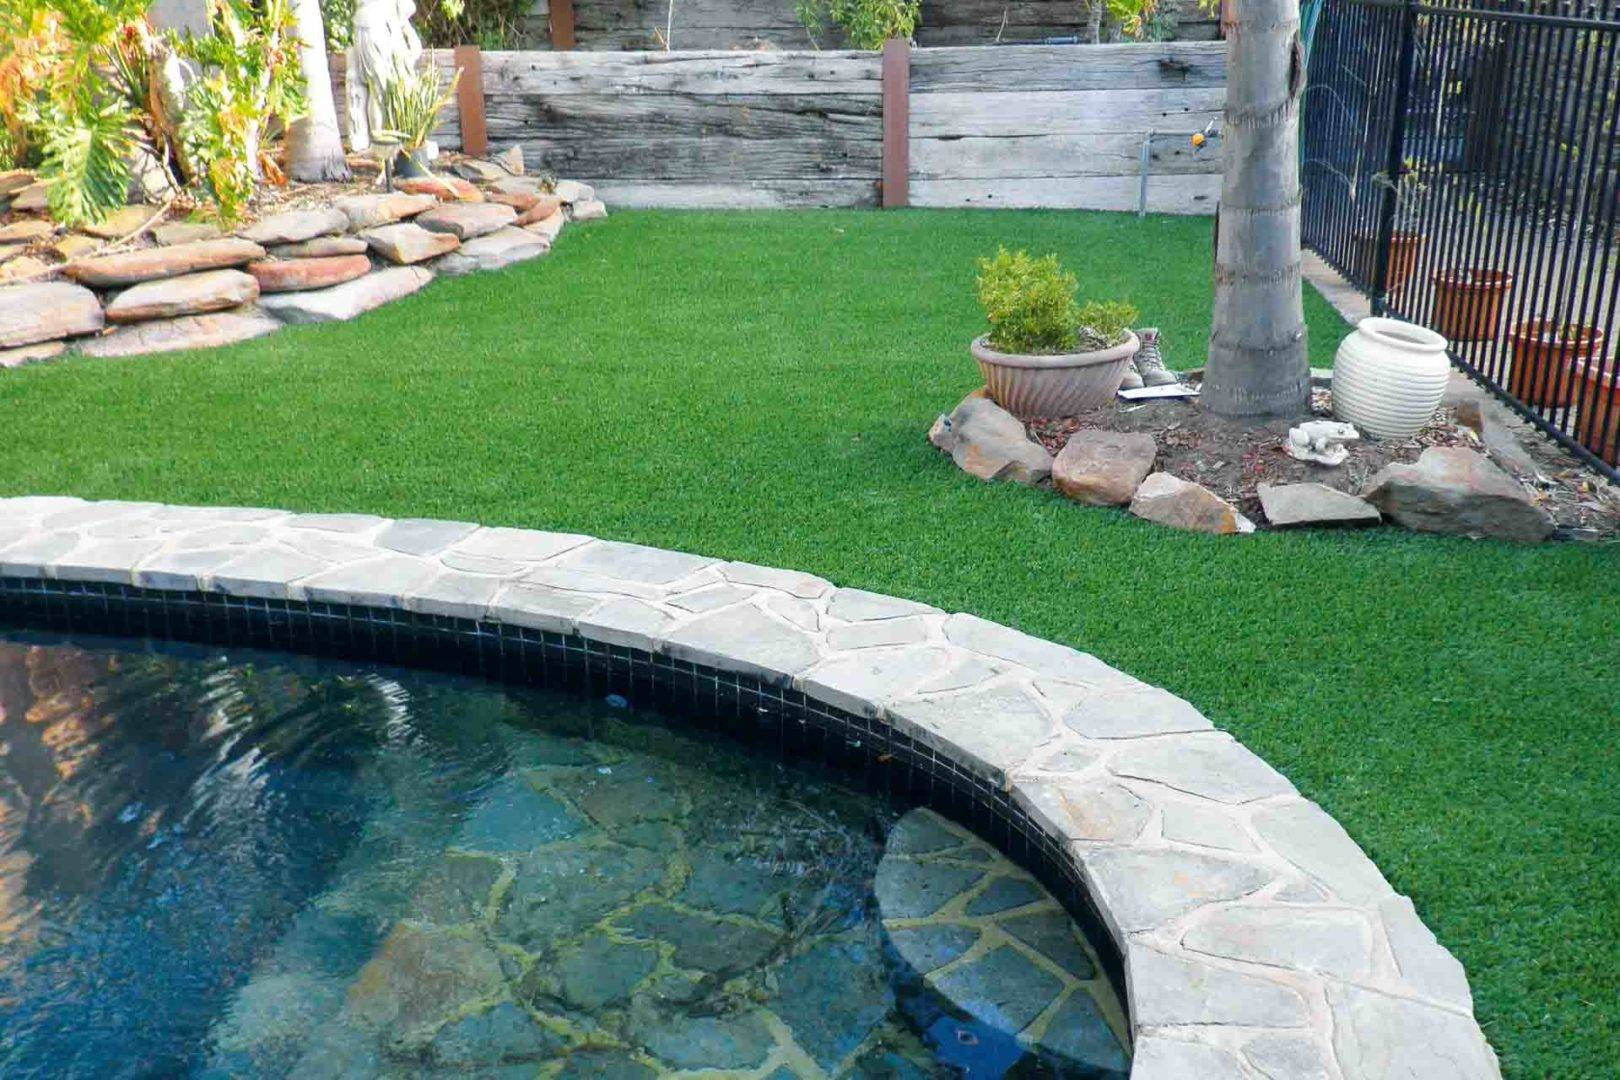 Artificial grass mixed with a fibreglass or concrete swimming pool is a winning combination.